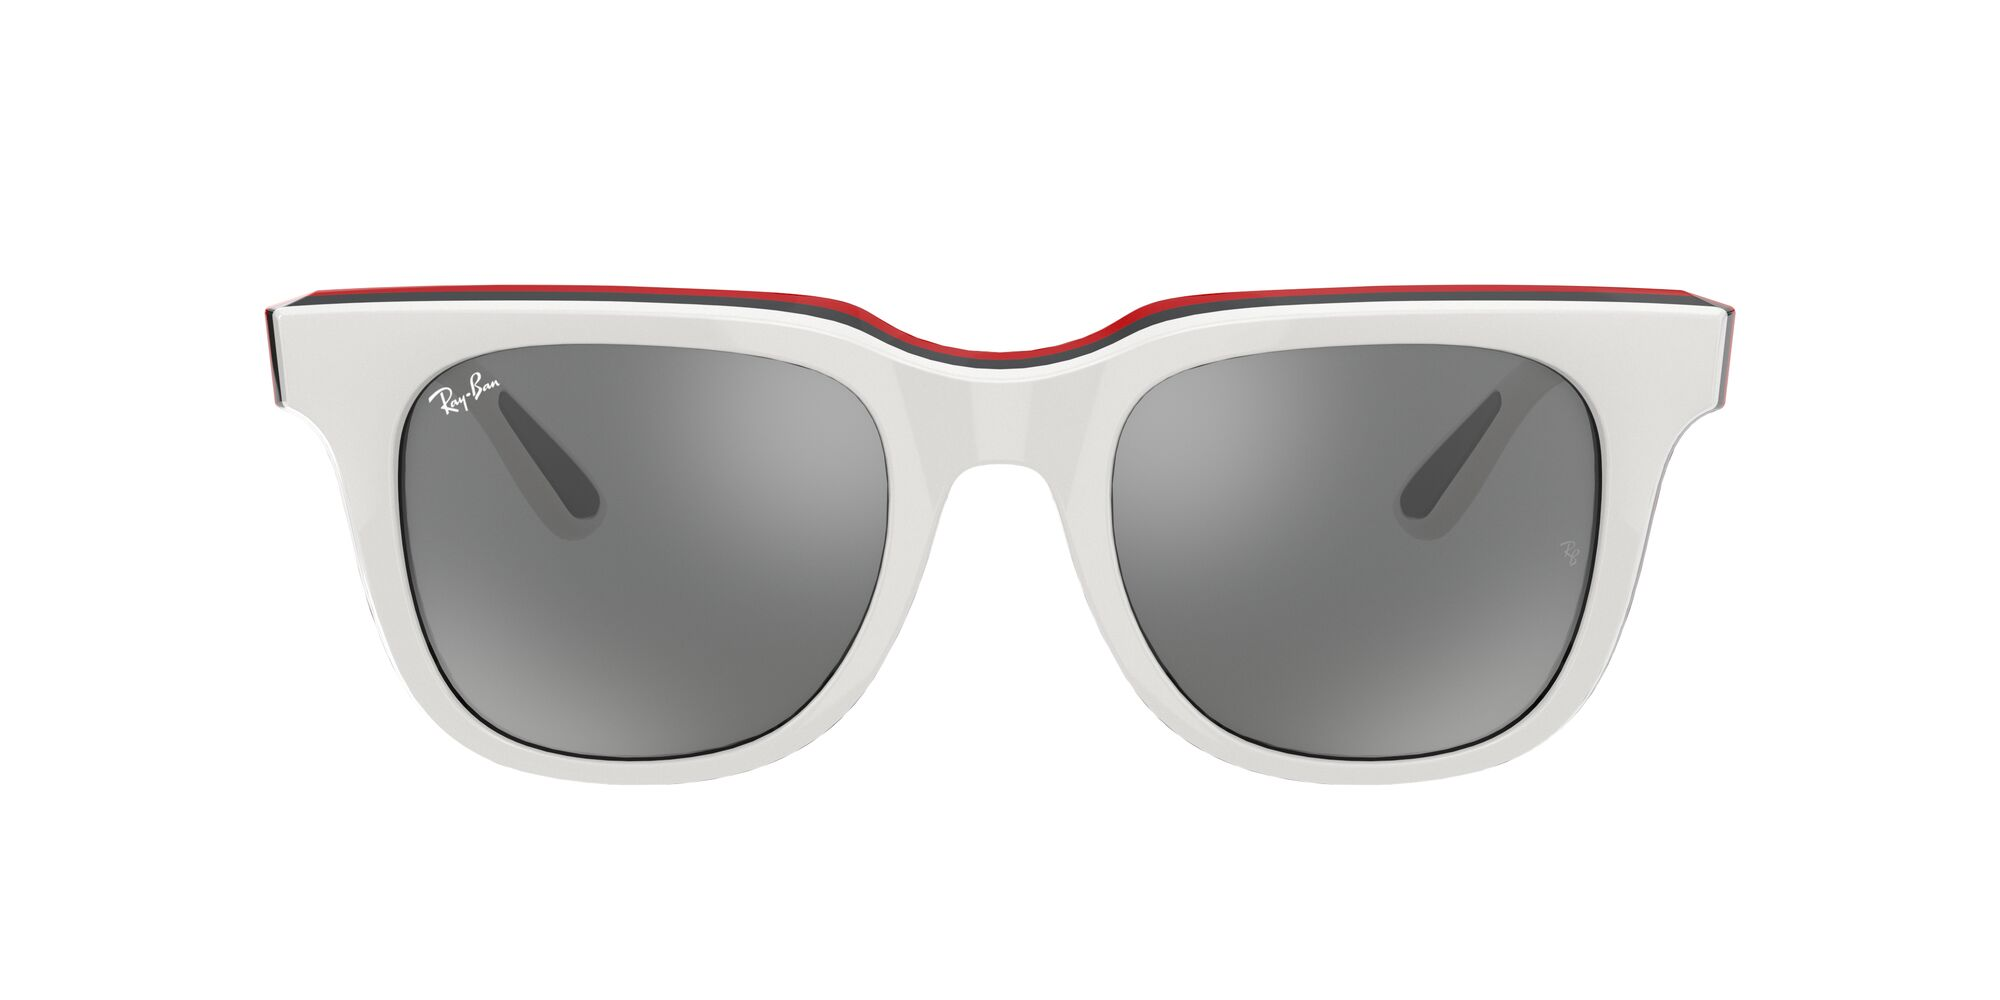 Front Ray-Ban Ray-Ban 0RB4368 65196G 0/21 Beige, Rood/Grijs